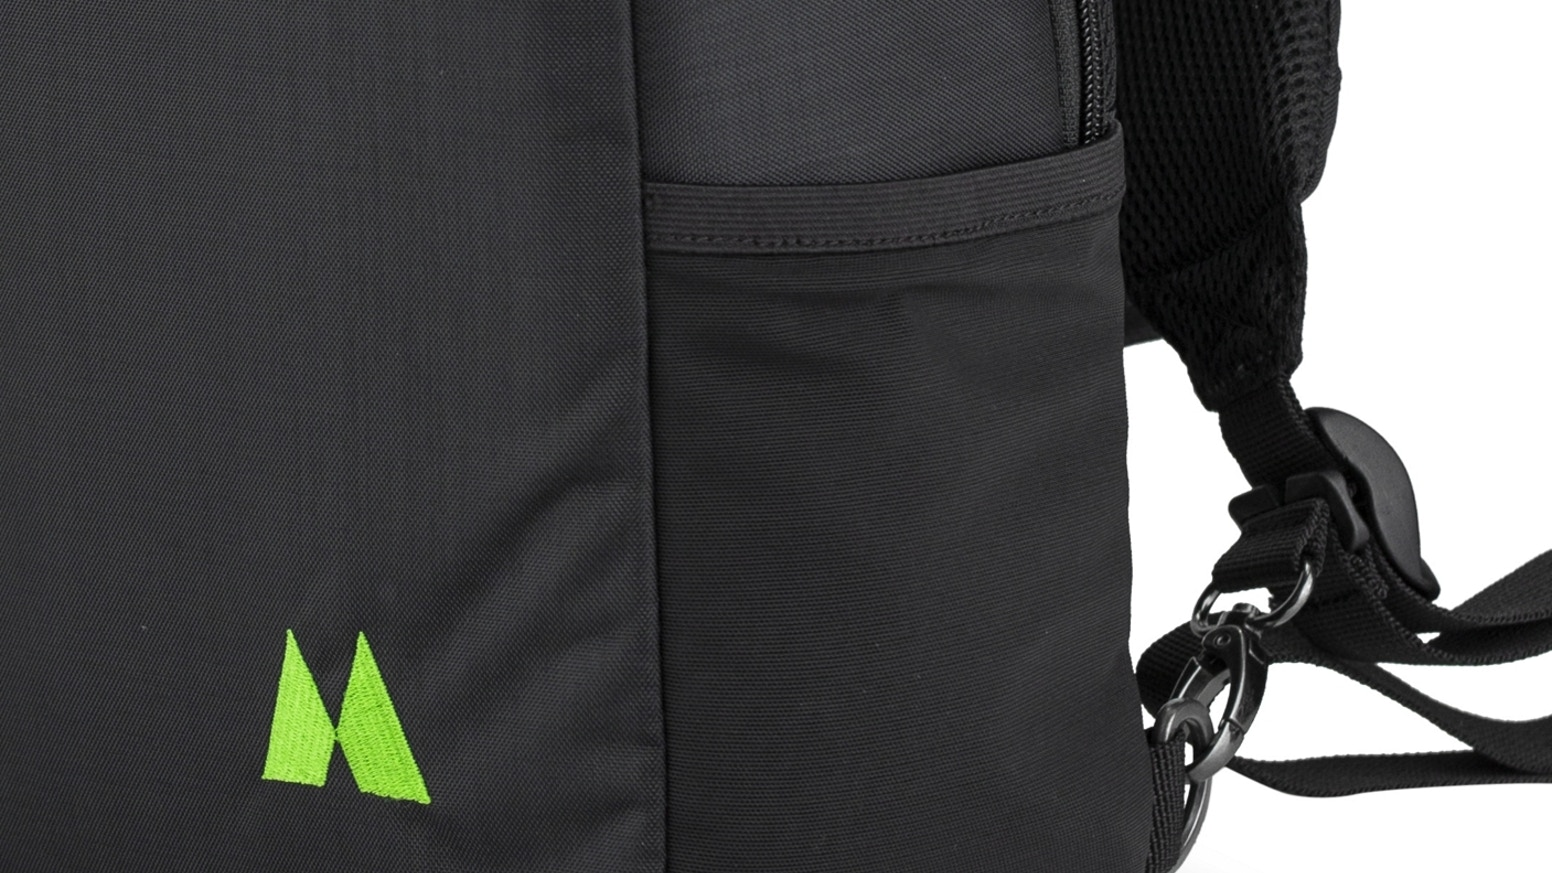 a minimal, modular bag system to allow you to travel through life with the right sized bag for any situation.